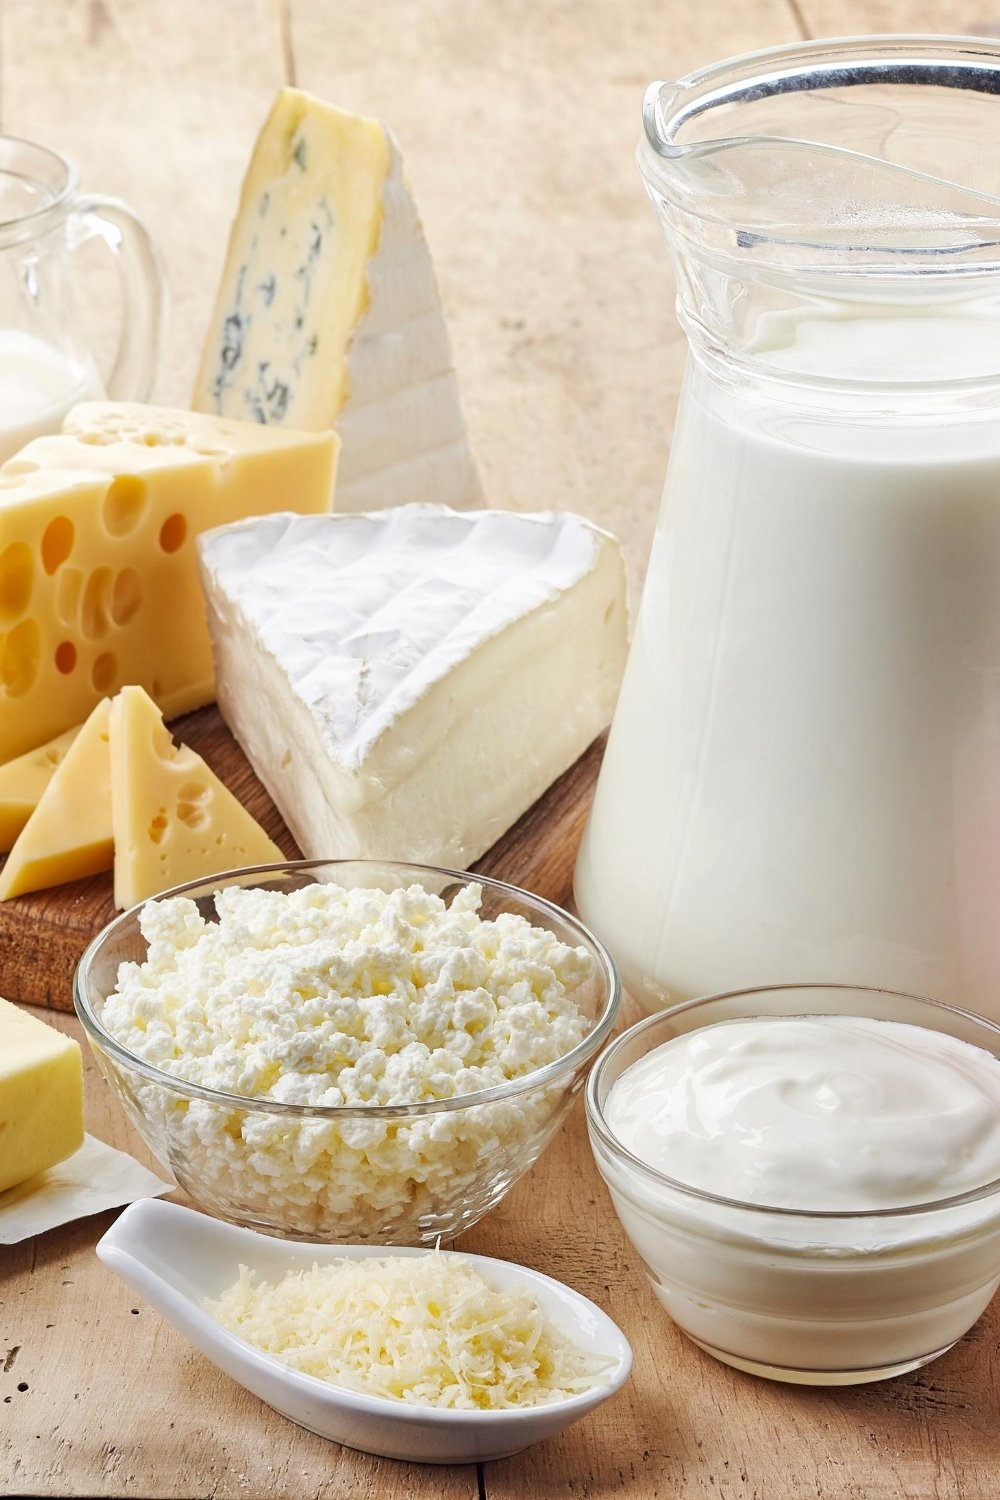 Naturally gluten free dairy products